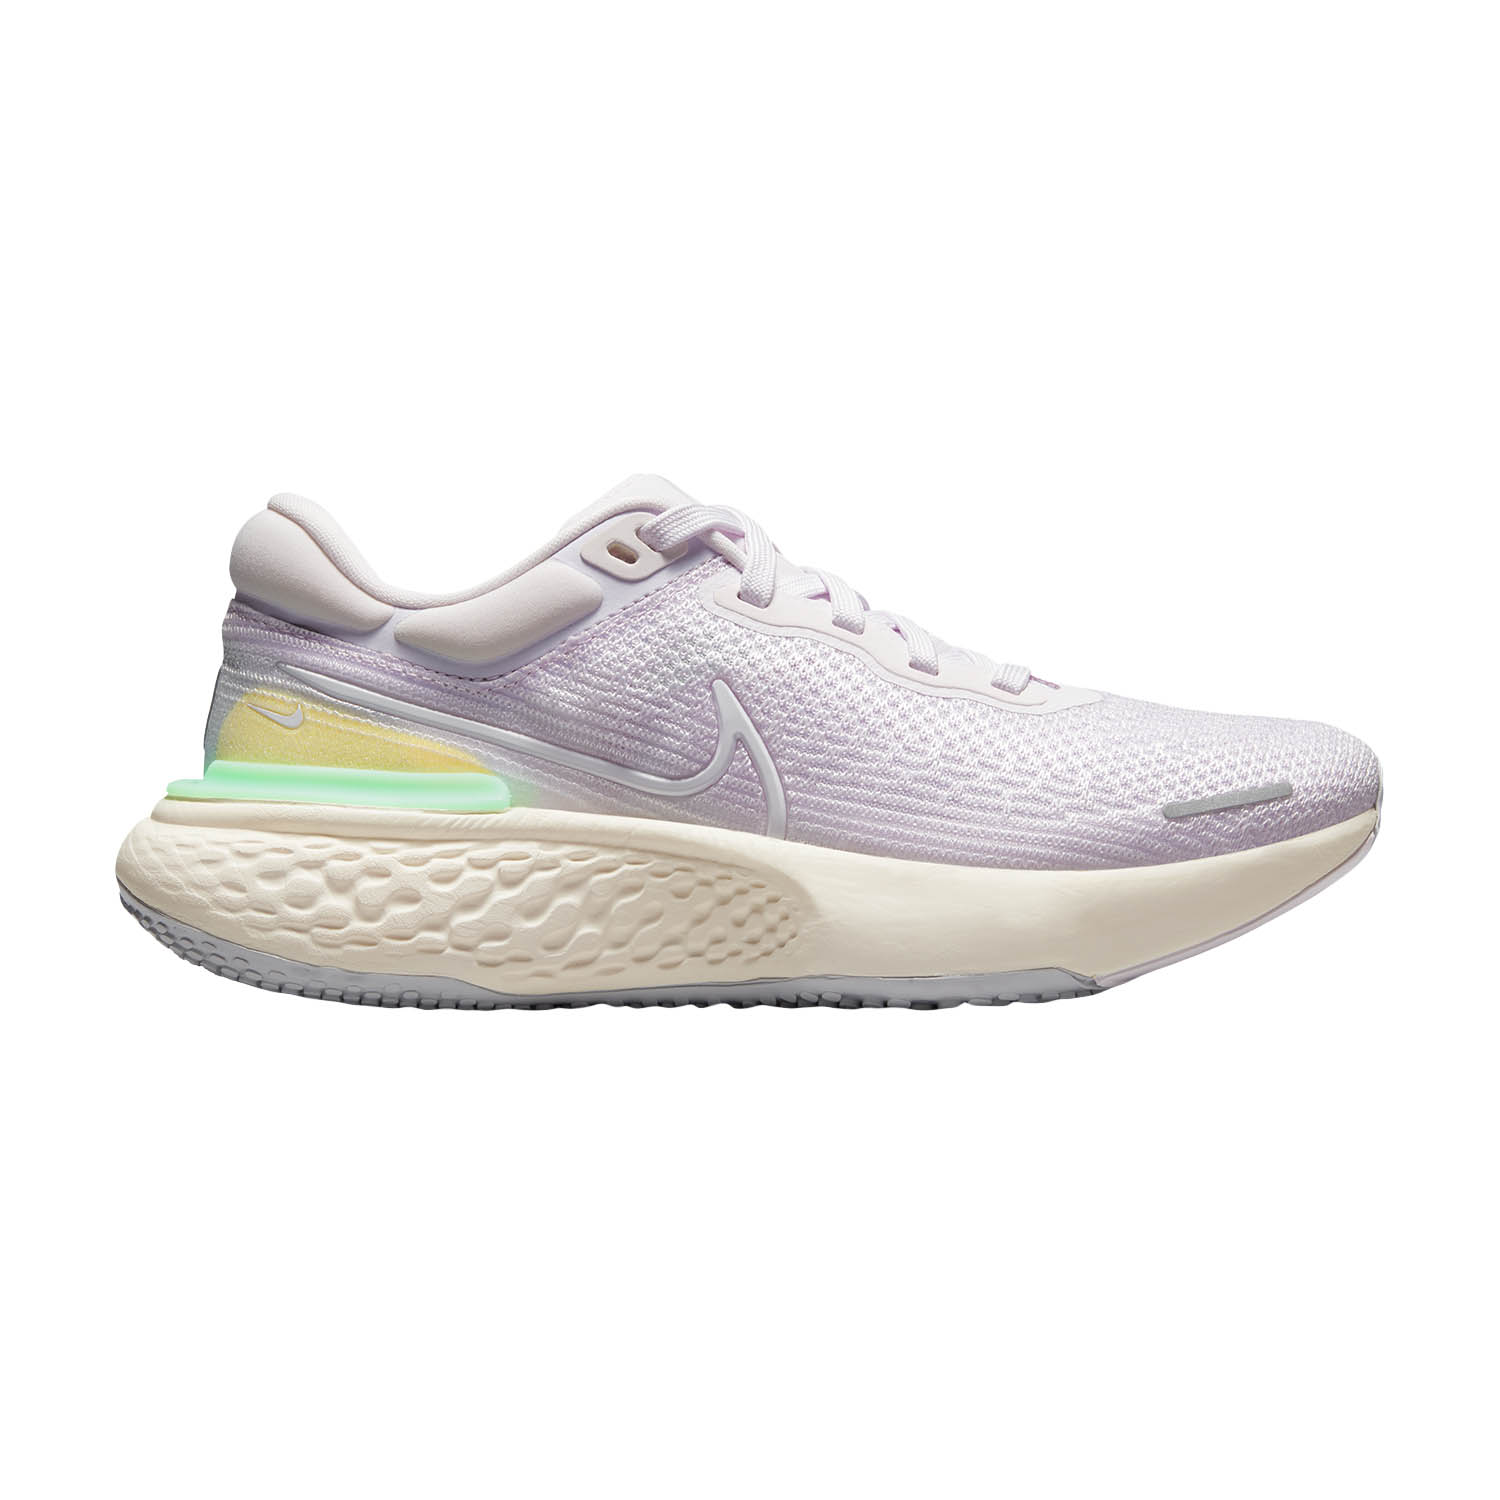 Nike ZoomX Invincible Run Flyknit - Light Violet/White/Infinite Lilac